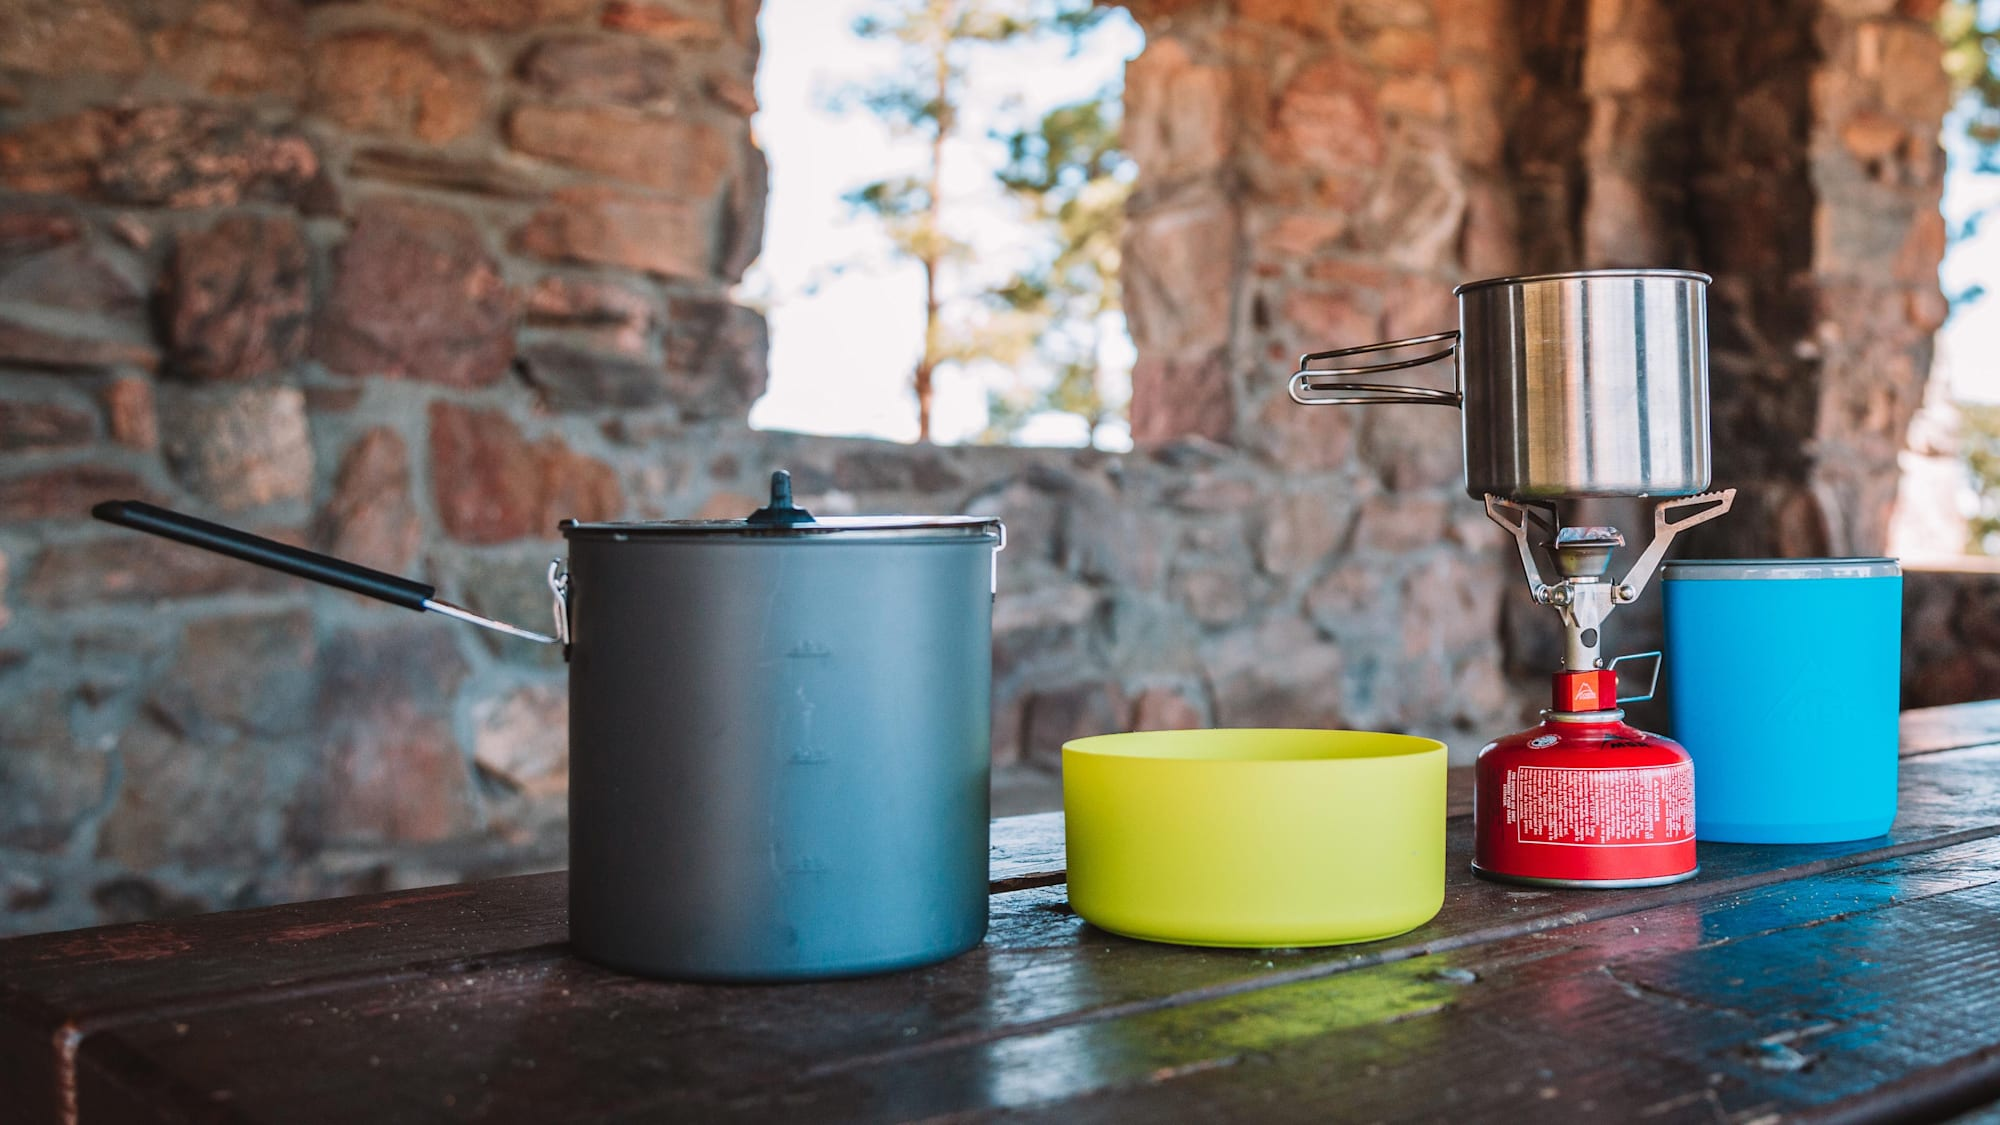 Summer Car Camping Gear - Cookware